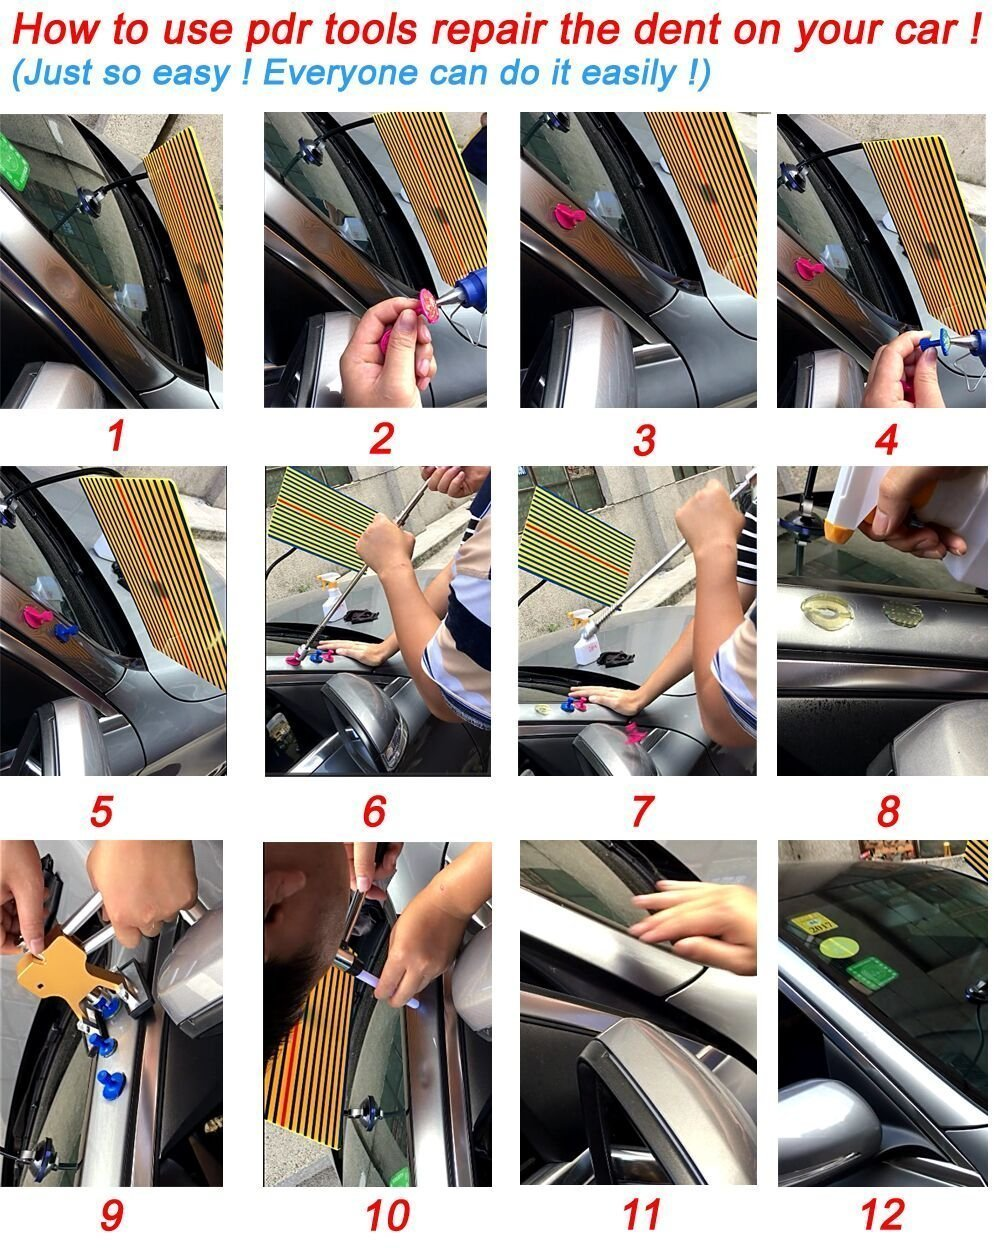 HiYi PDR Auto Body 2 in 1 T-bar Glue Dent Puller with Red T Hand Puller And 24 Pcs different Size Tabs Car Repair Tools Dent Removal Tools by HiYi (Image #9)